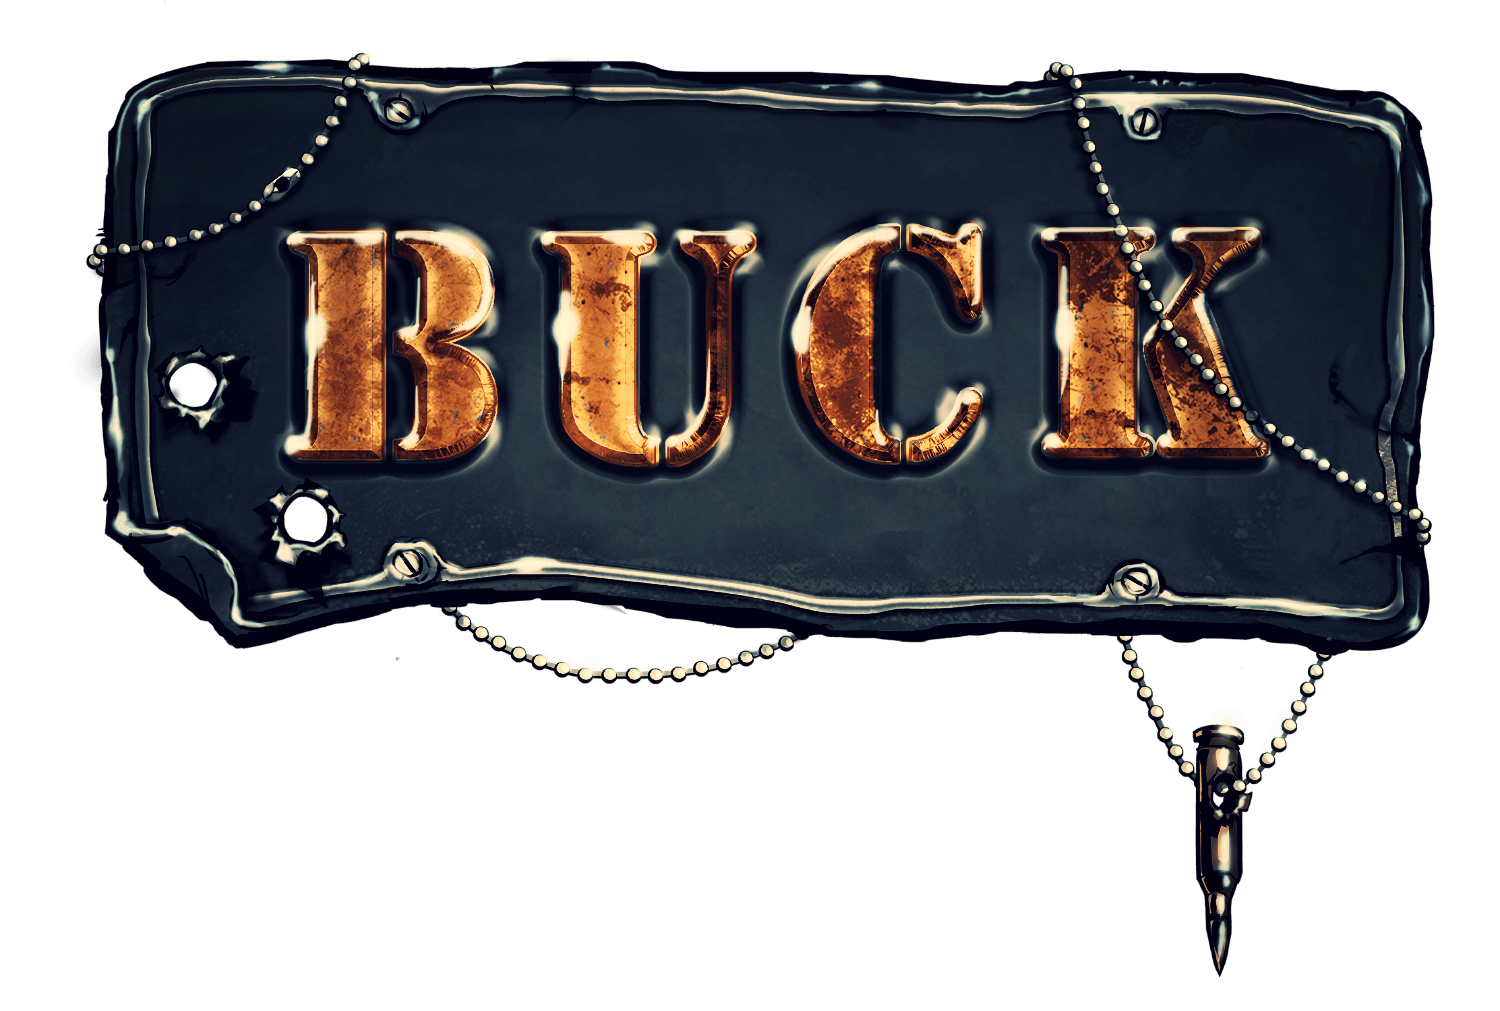 BUCK 2D Metroidvania Adventure Now 50% Funded on Kickstarter, Adds Caddicarus Voice